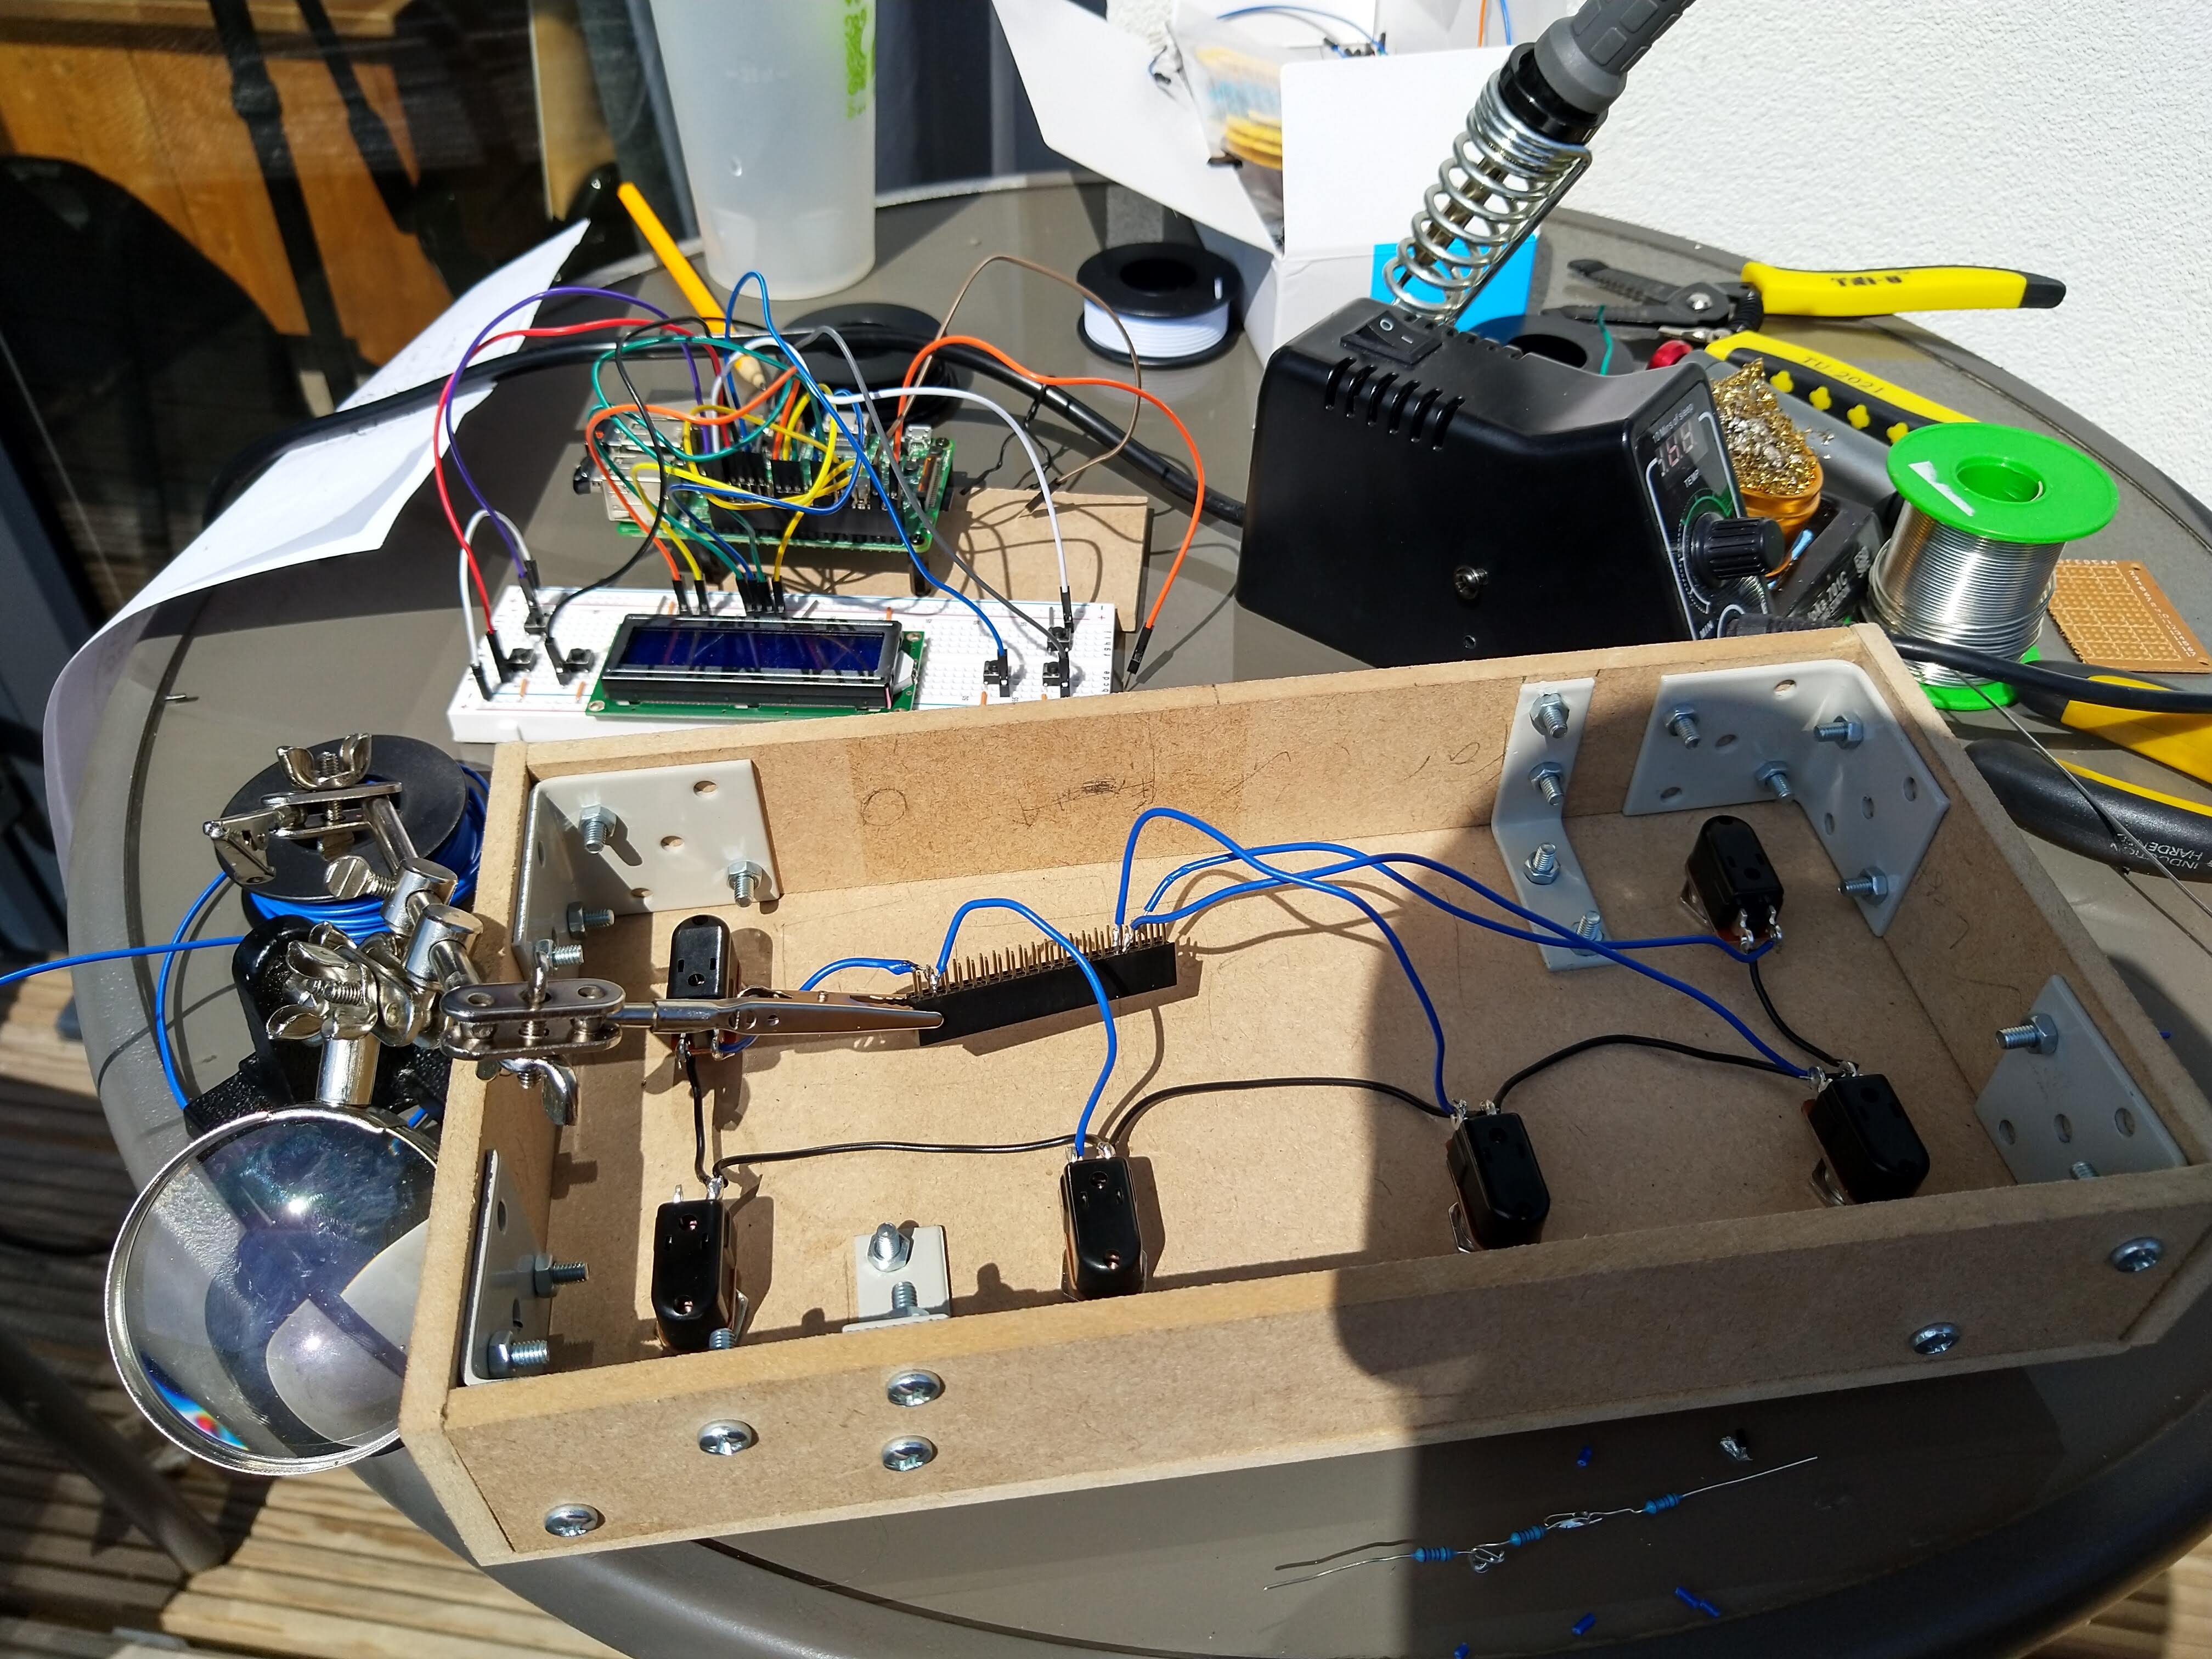 An outside table with the initial SoundFloored pedal box, the breadboard implementation and a soldering iron on it. The MDF box is upside down and a helping hand is holding a Raspberry Pi header extender that is being soldered to wires connecting it to various footswitches